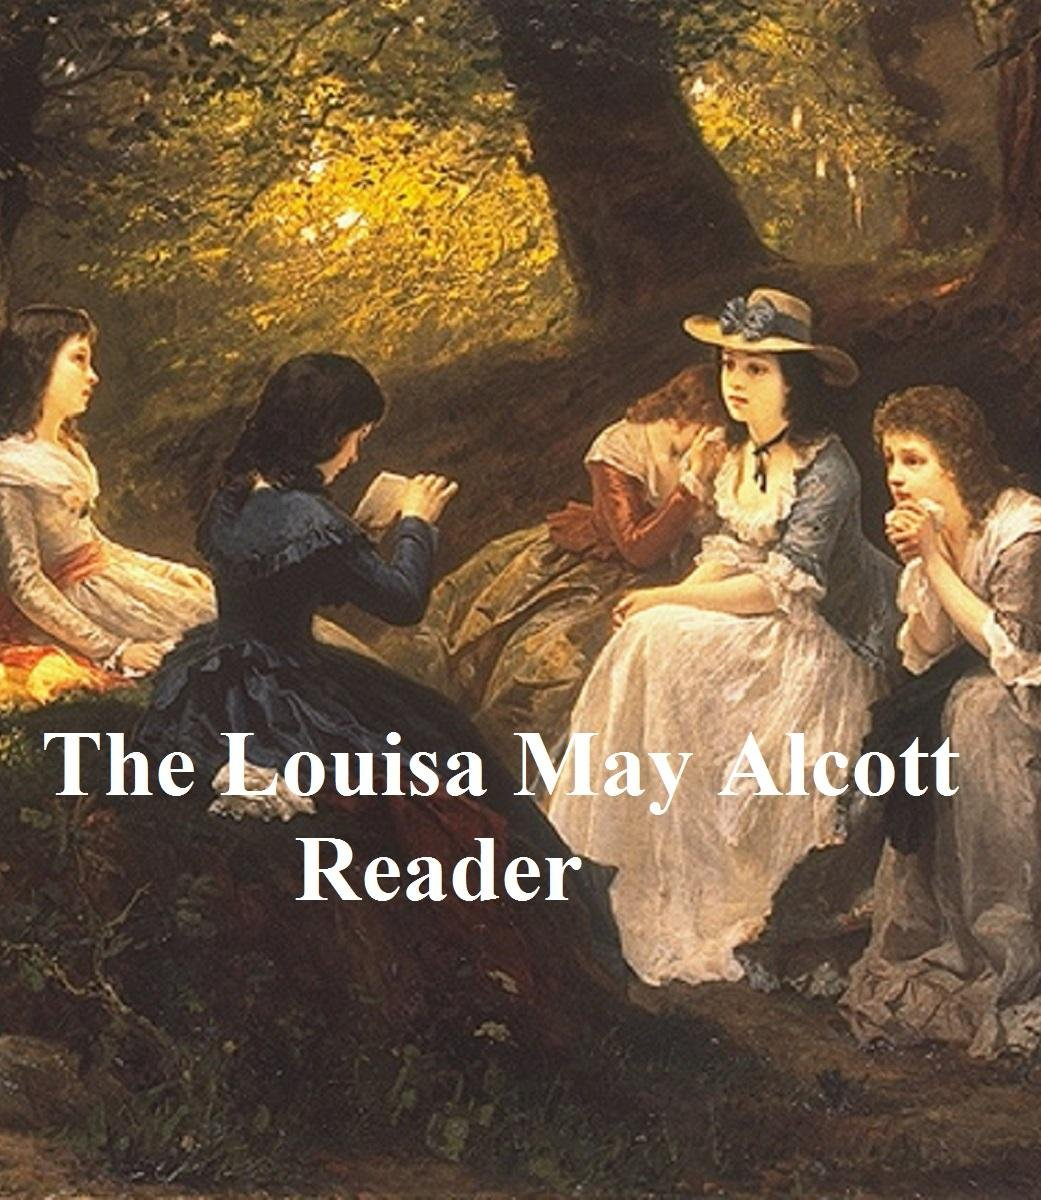 The Louisa May Alcott Reader, A Supplementary Reader for the Fourth Year of School